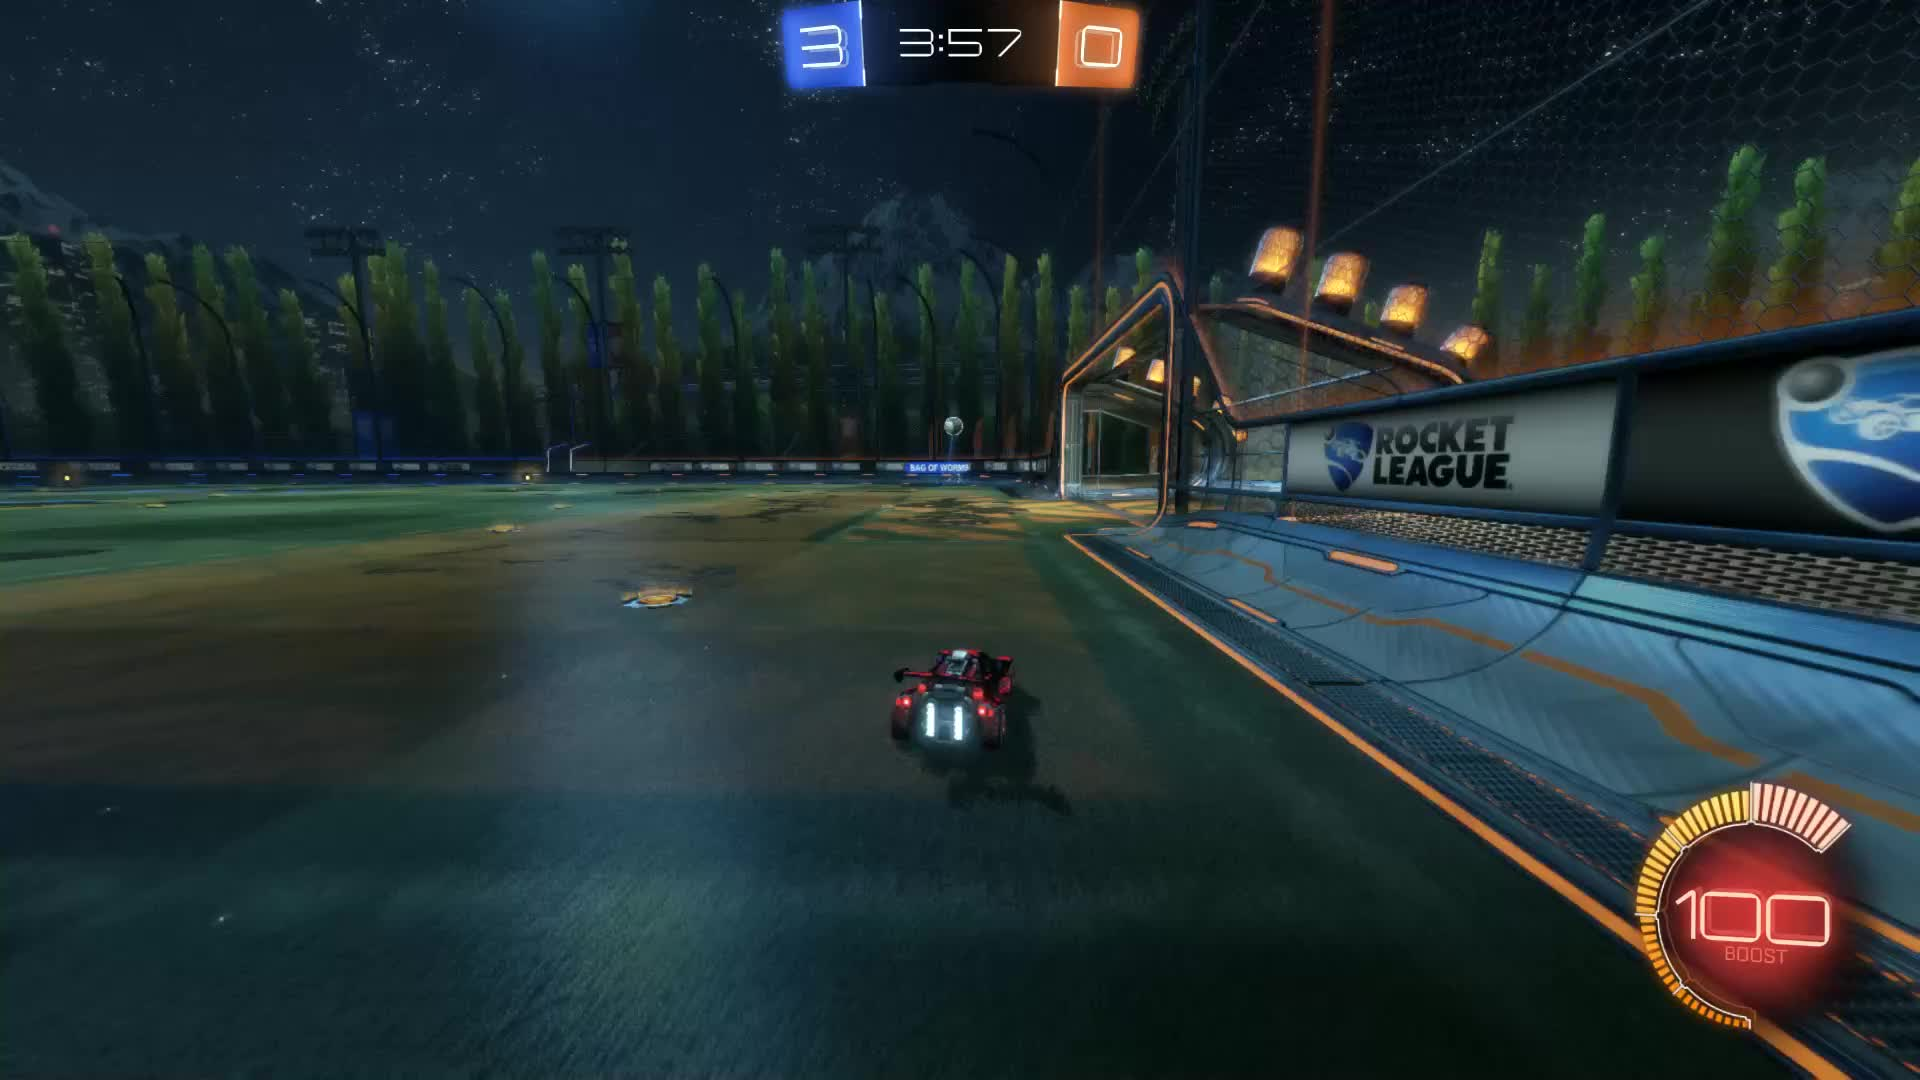 Birdyy, Gif Your Game, GifYourGame, Goal, Rocket League, RocketLeague, Goal 4: Birdyy GIFs